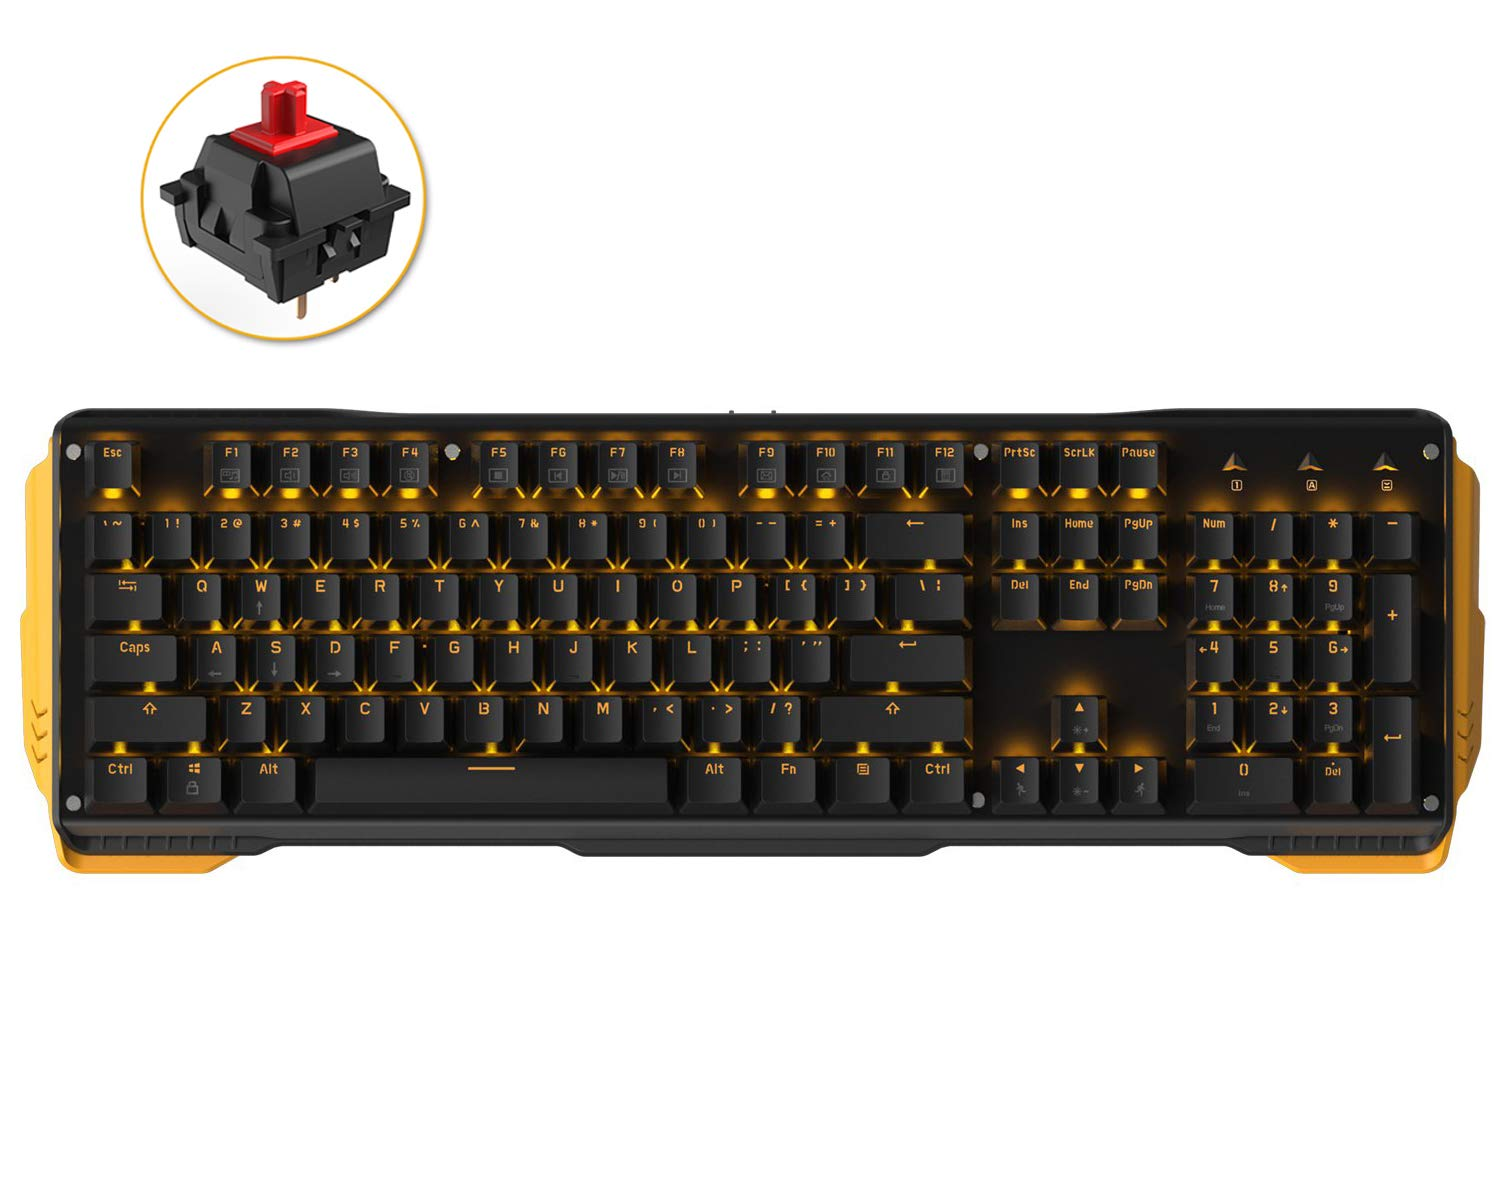 James Donkey 619 Mechanical Keyboard Red Switch GATERON 104 Key 50 Million Click Programmable 13 Customize Backlit LED NKRO Anti Ghosting USB Wired for Gaming PC Desktop Office Laptop - Black